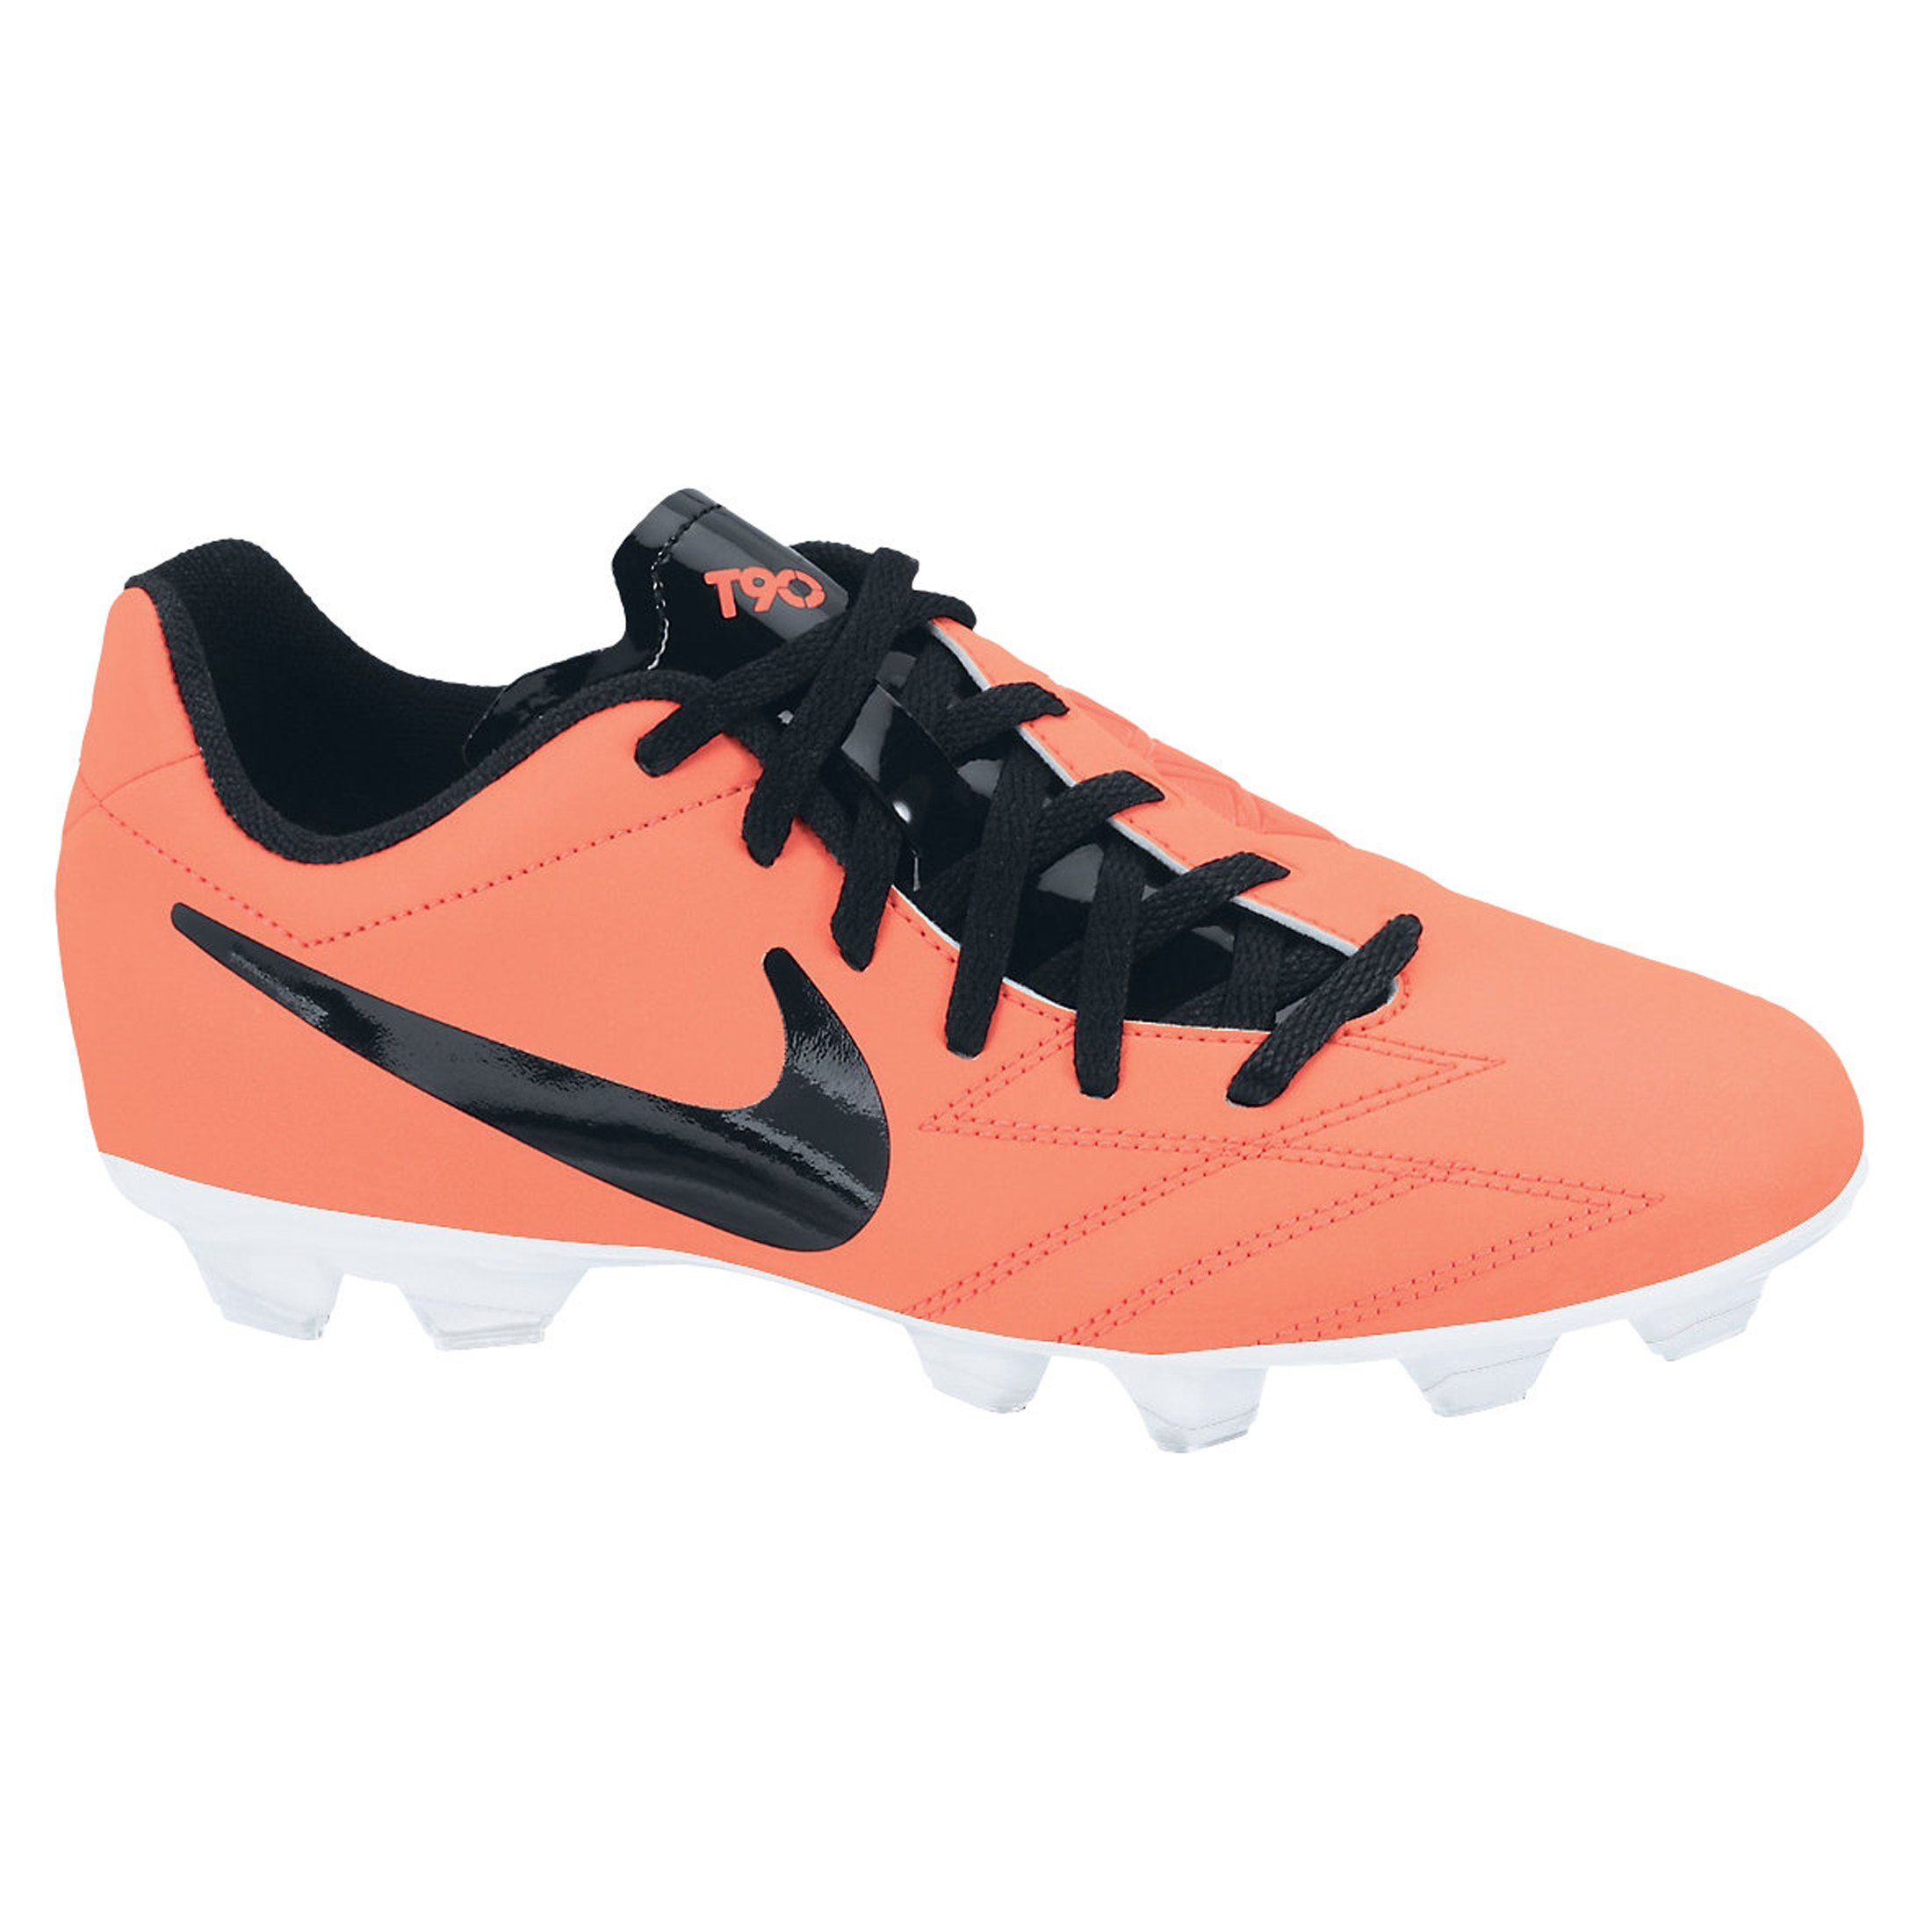 Nike Total90 Shoot IV Firm Ground Football Boots - Bright Mango/Black/Total Crimson/White - Kids